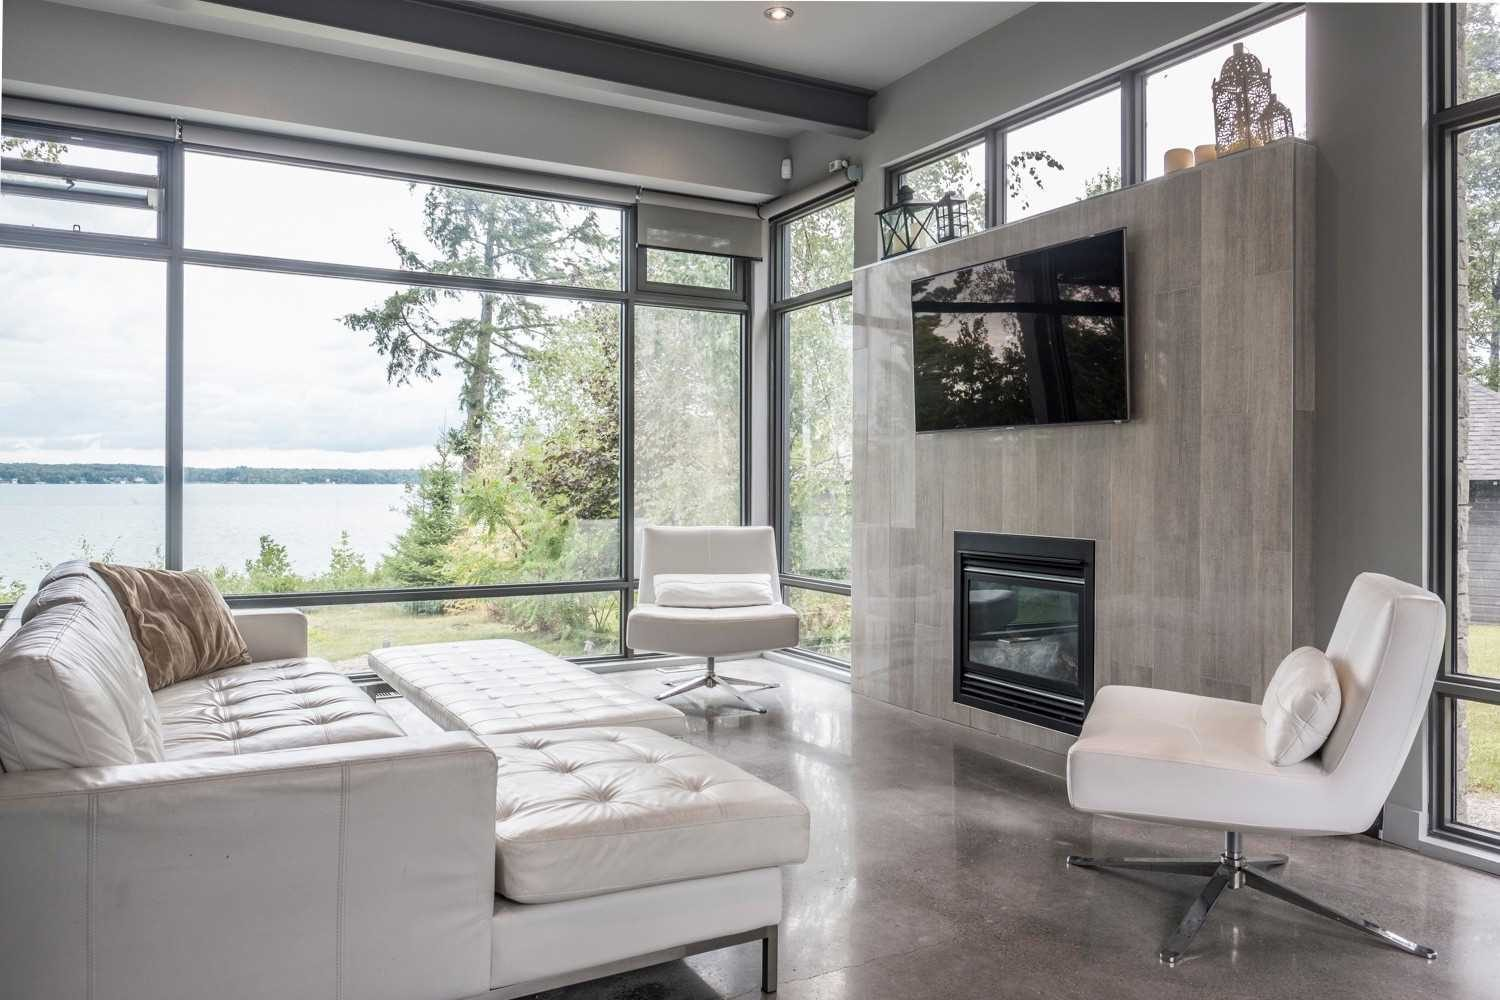 Ultra modern bedroom fireplace surround built with gray tile.